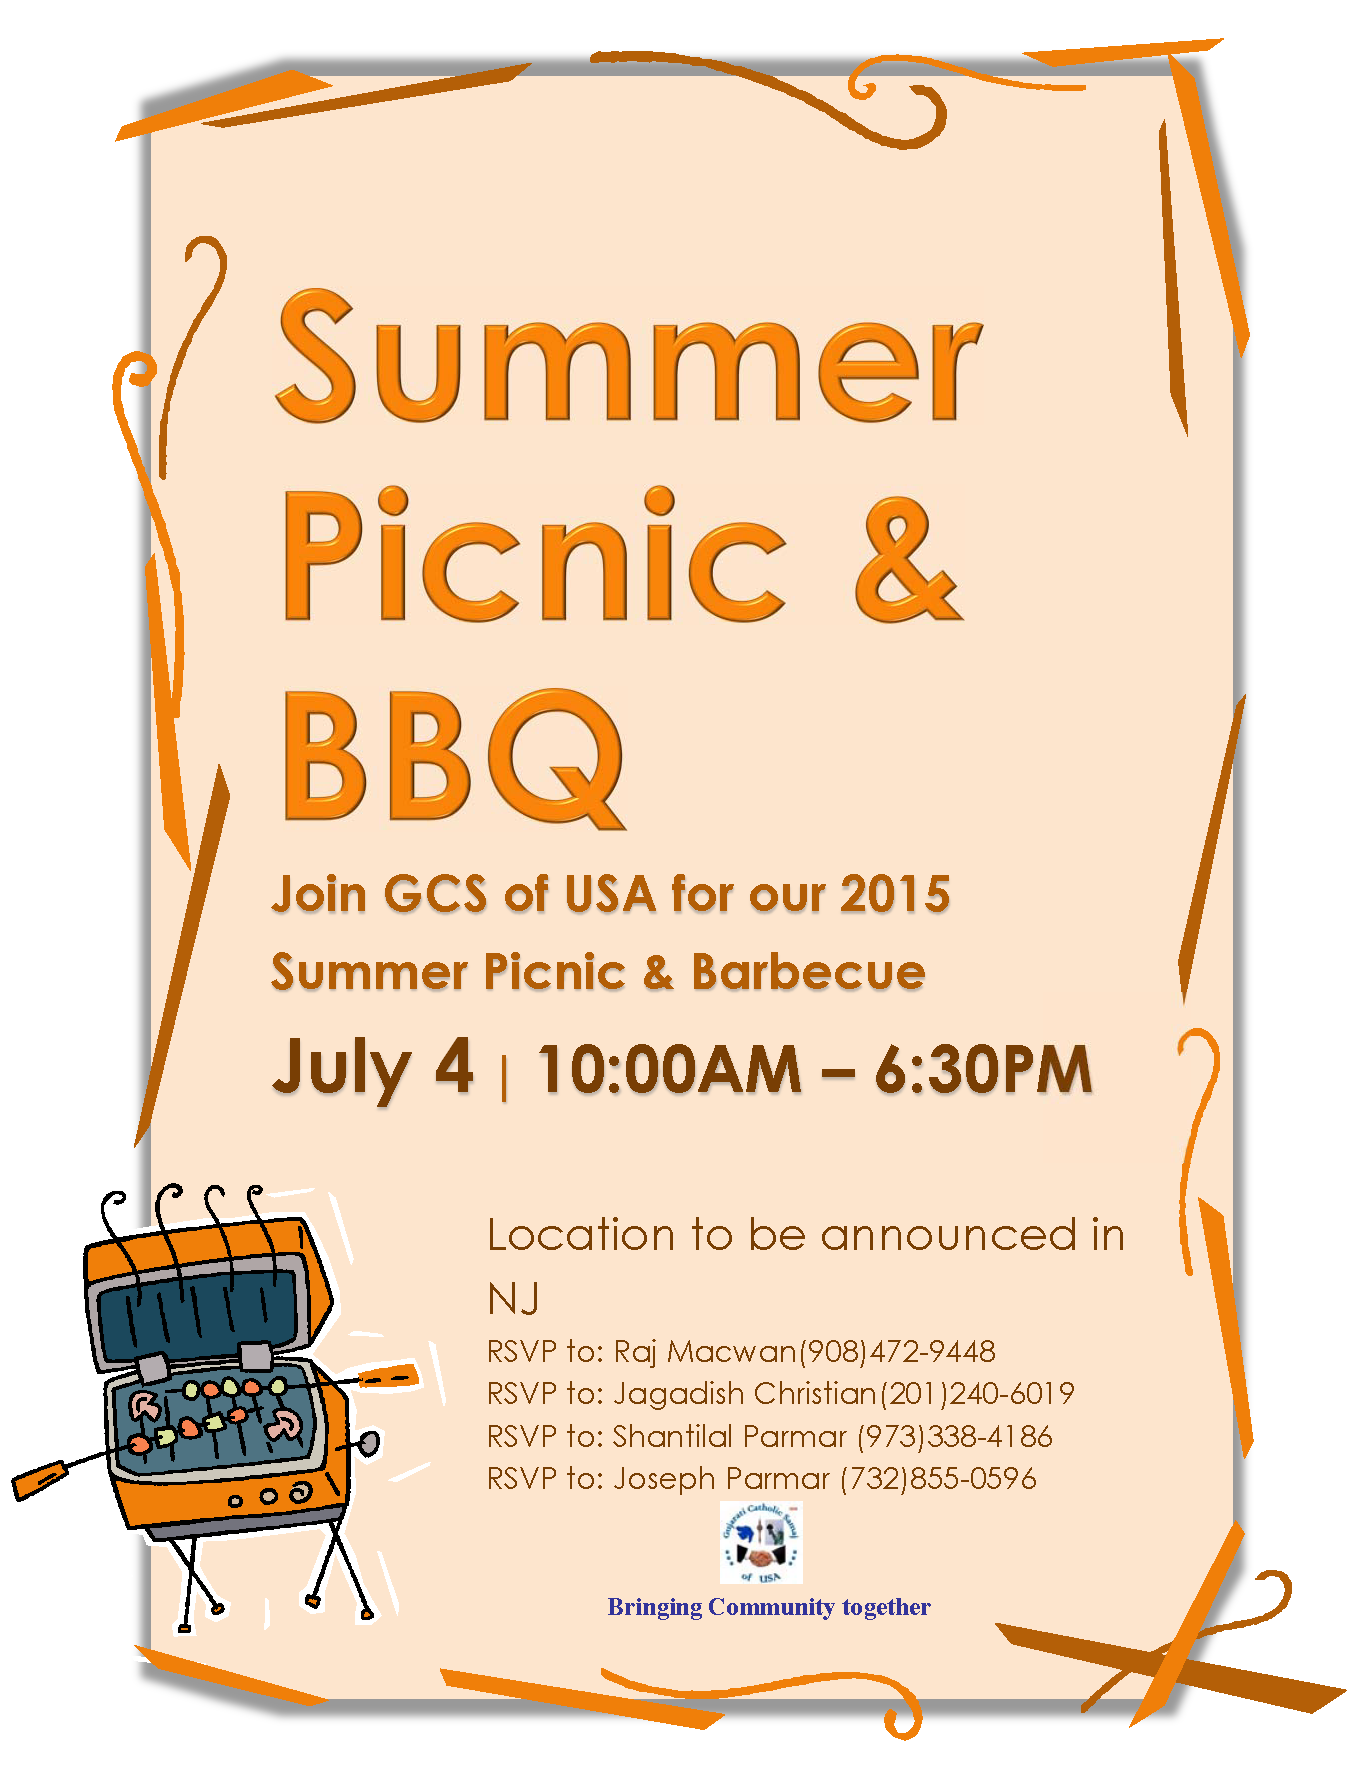 Summer Picnic-Barbecue 2015